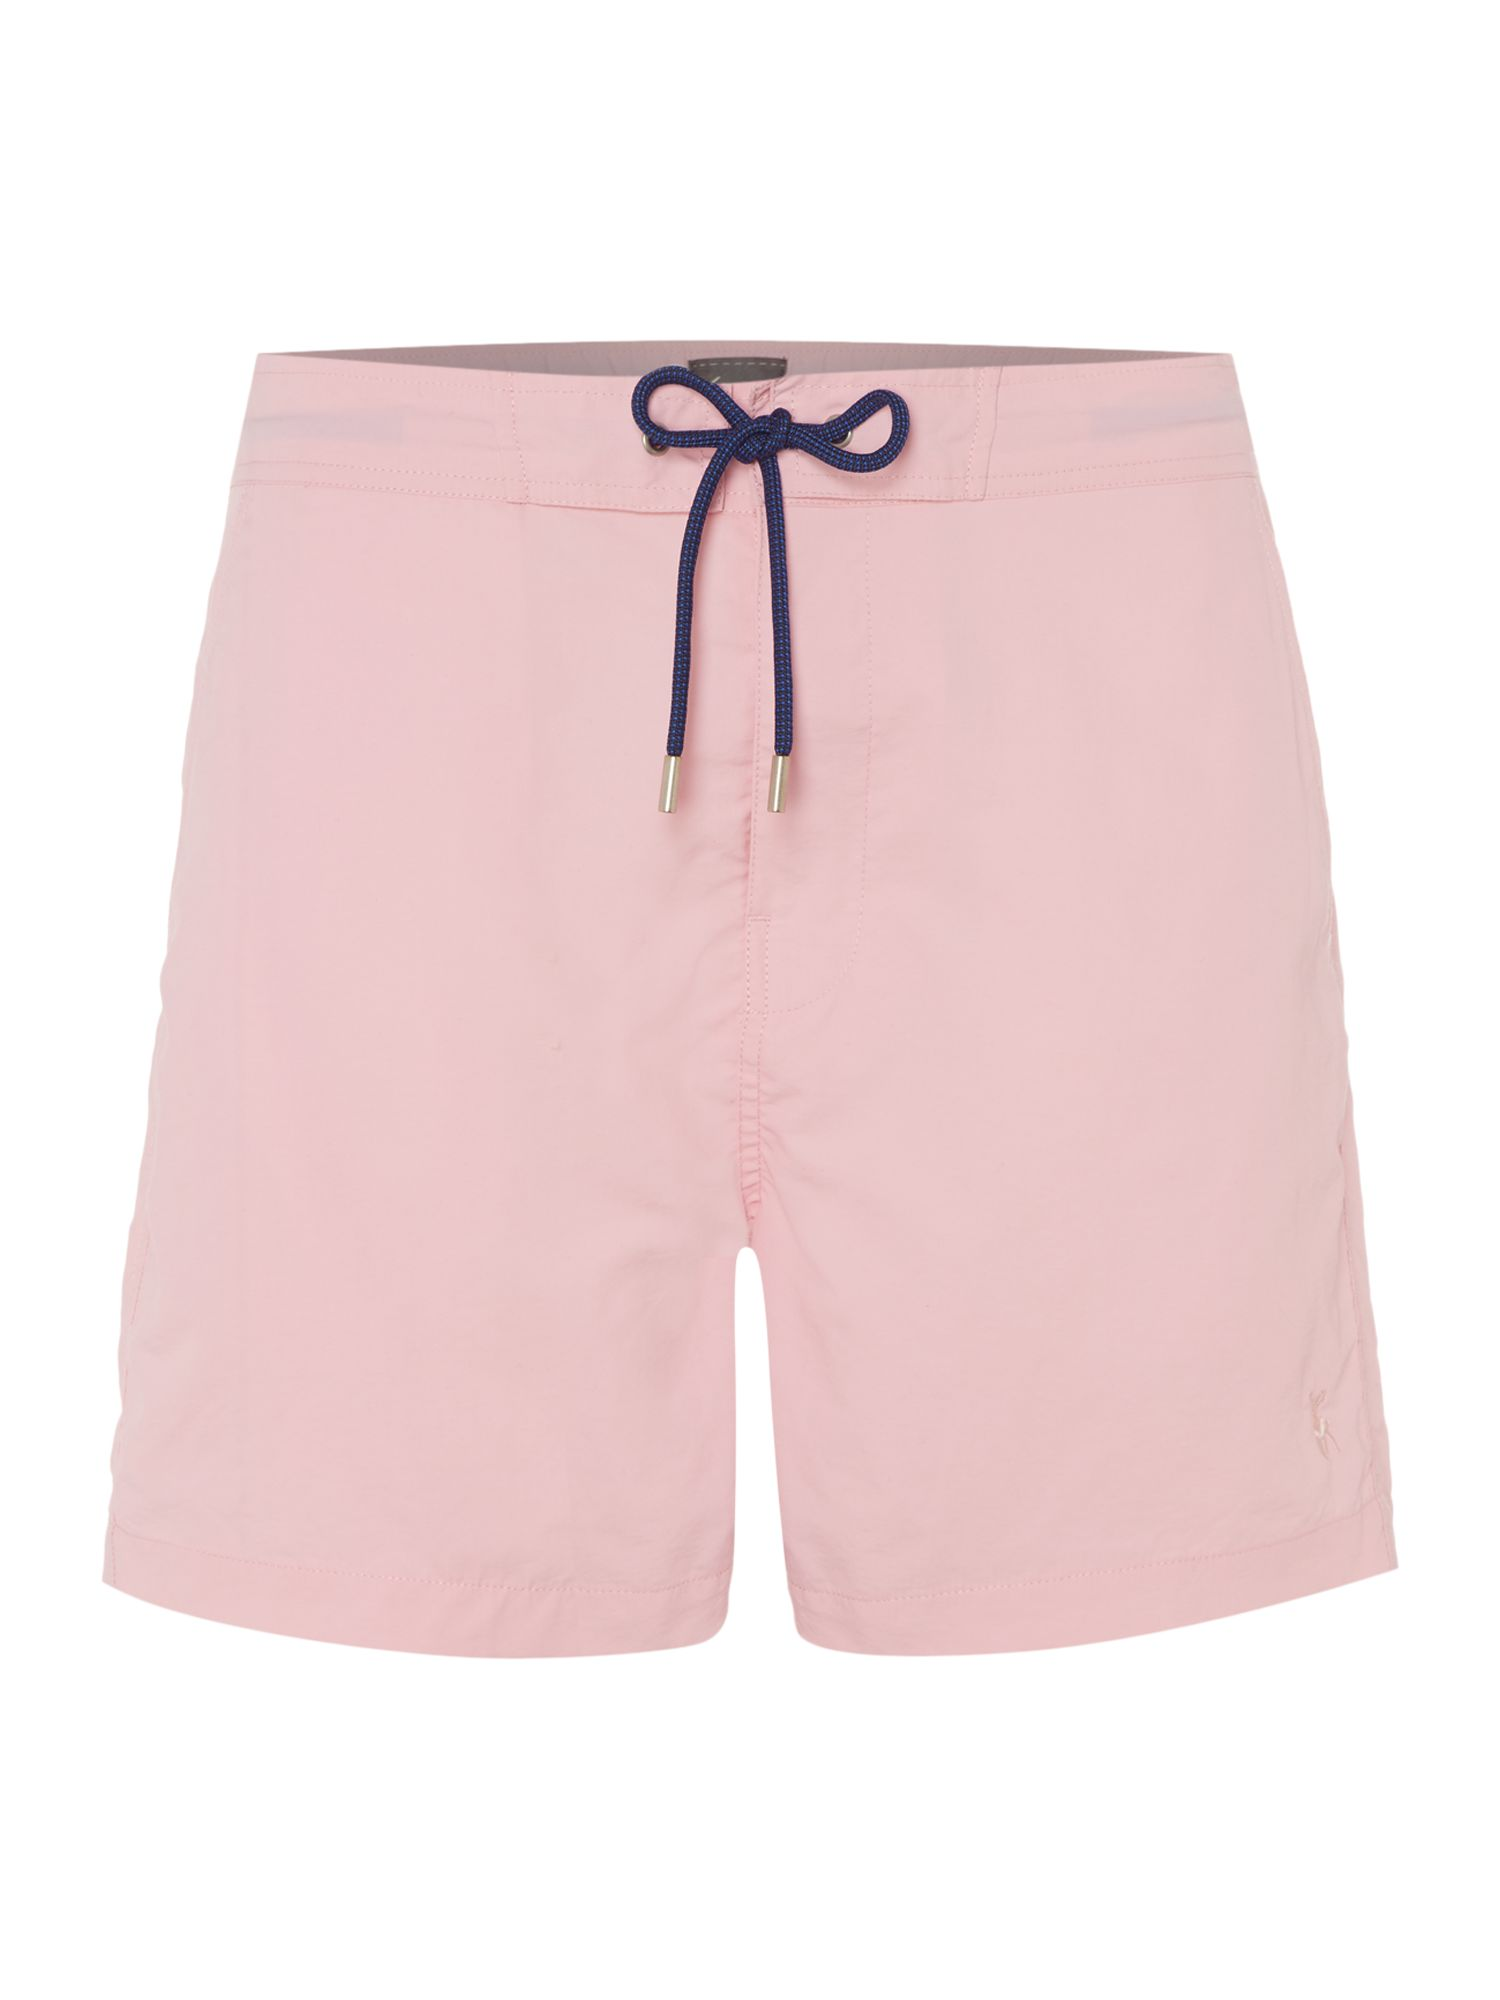 Men's Linea Linea Plain Swim Short, Pink